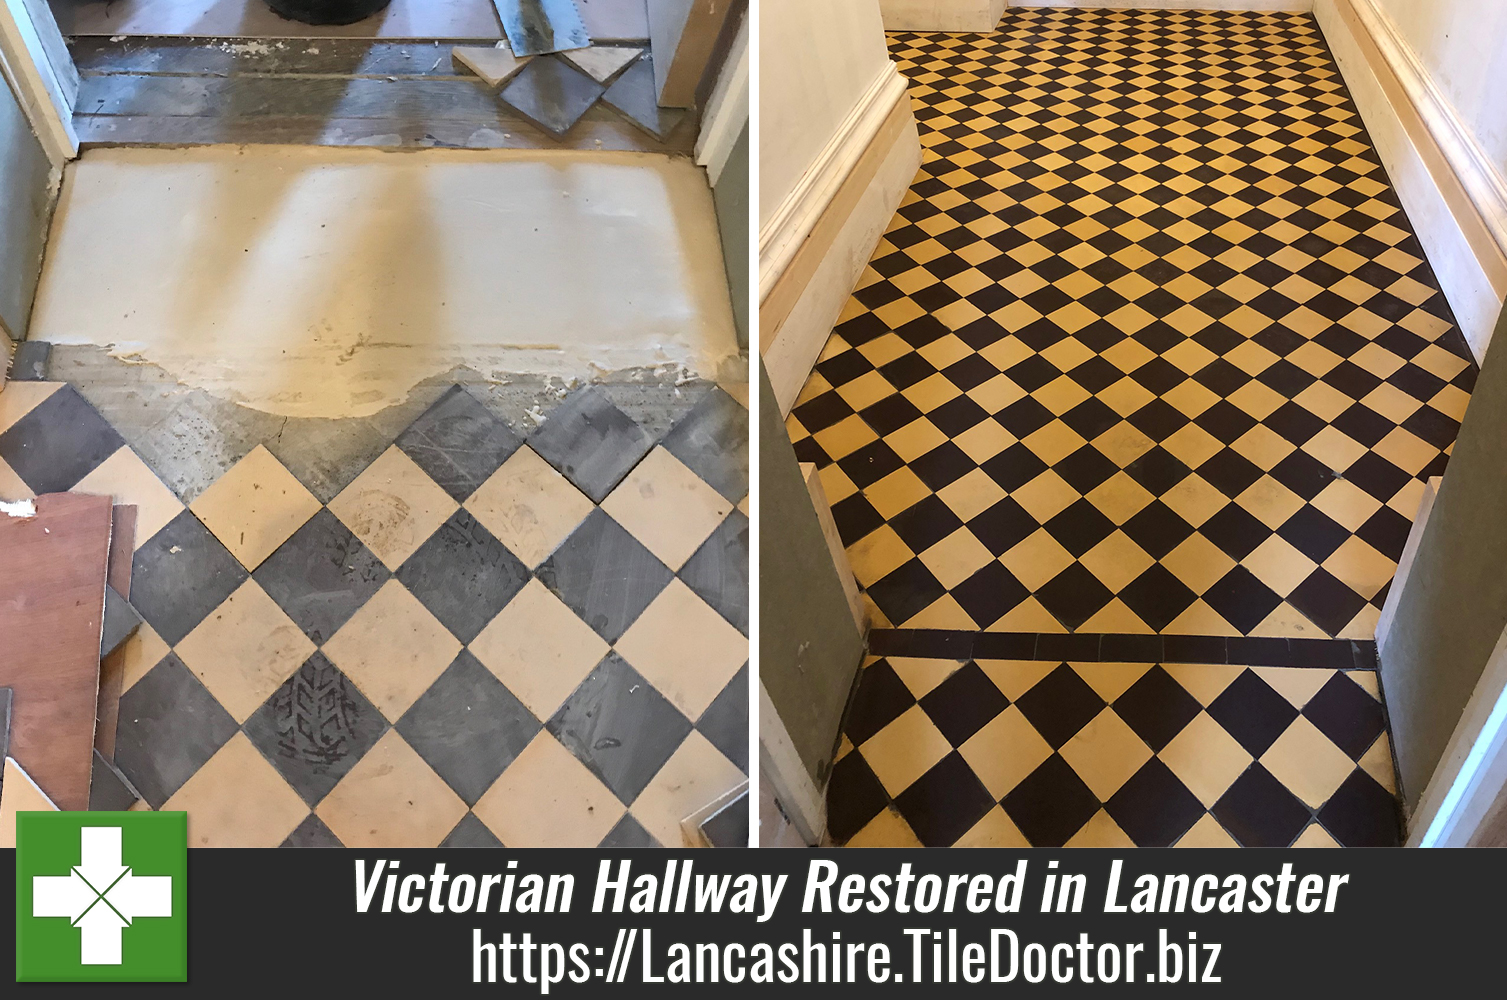 Yellow and Black Victorian Hallway Floor Tiling Restored in Lancaster